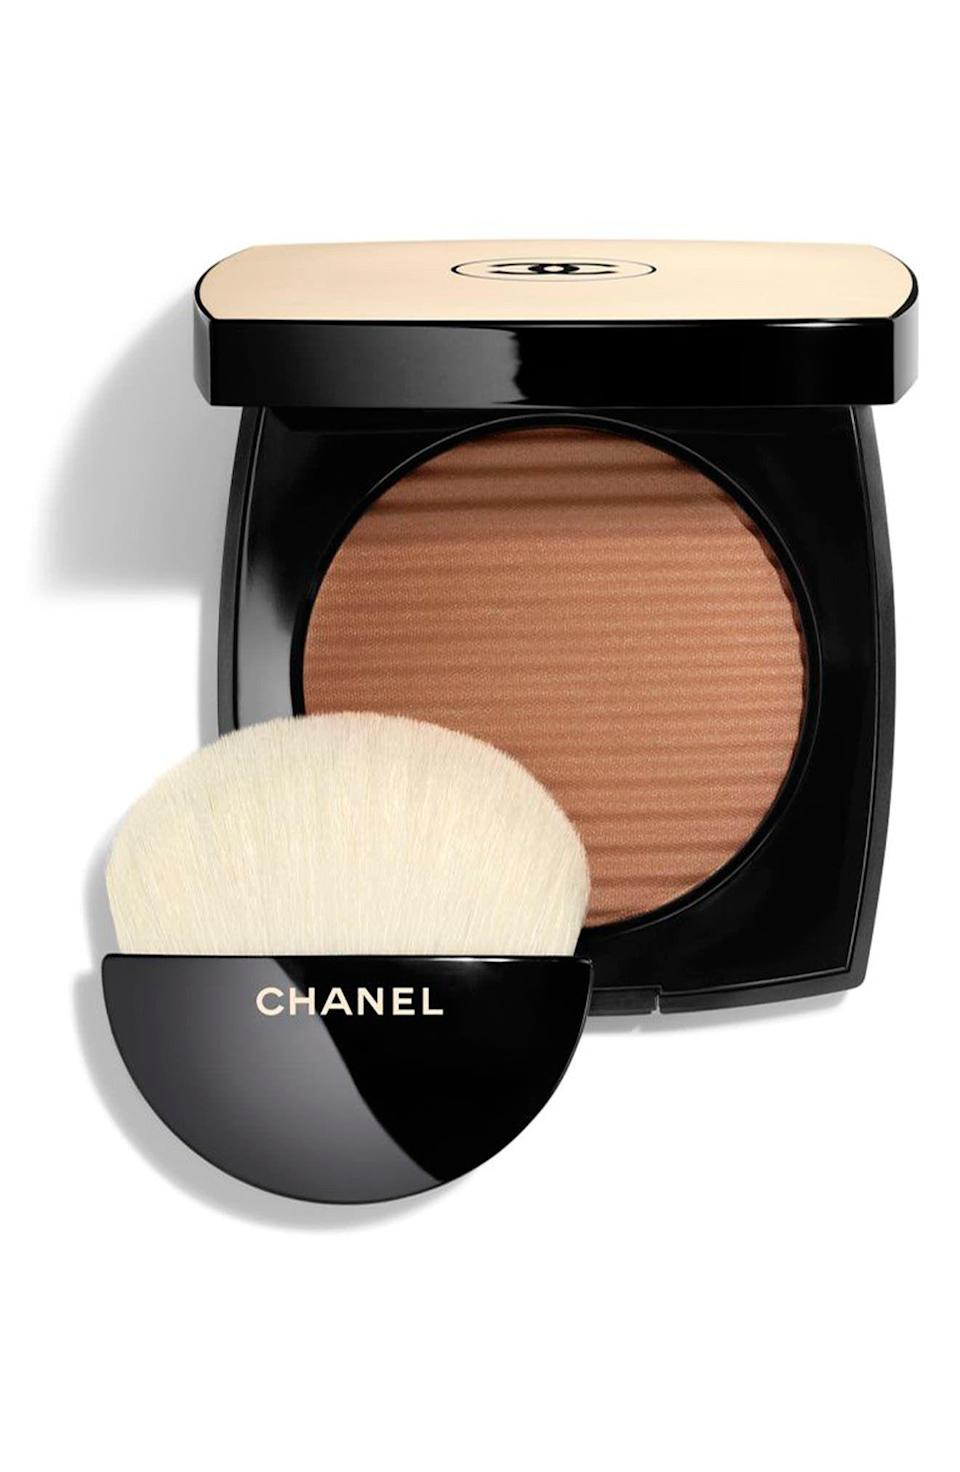 """<p><strong>Chanel</strong></p><p>nordstrom.com</p><p><strong>$58.00</strong></p><p><a href=""""https://go.redirectingat.com?id=74968X1596630&url=https%3A%2F%2Fwww.nordstrom.com%2Fs%2Fchanel-les-beiges-healthy-glow-luminous-color-powder-bronzer-highlighter%2F4633278&sref=https%3A%2F%2Fwww.goodhousekeeping.com%2Fbeauty-products%2Fg36020083%2Fbest-bronzer-for-dark-skin%2F"""" rel=""""nofollow noopener"""" target=""""_blank"""" data-ylk=""""slk:Shop Now"""" class=""""link rapid-noclick-resp"""">Shop Now</a></p><p>The chic, slightly iridescent Chanel powder easily sweeps across your skin, giving you a beachy glow. This bronze powder is<strong> light and buildable, resulting in a healthy glow</strong> for tan and medium skin tones. </p>"""